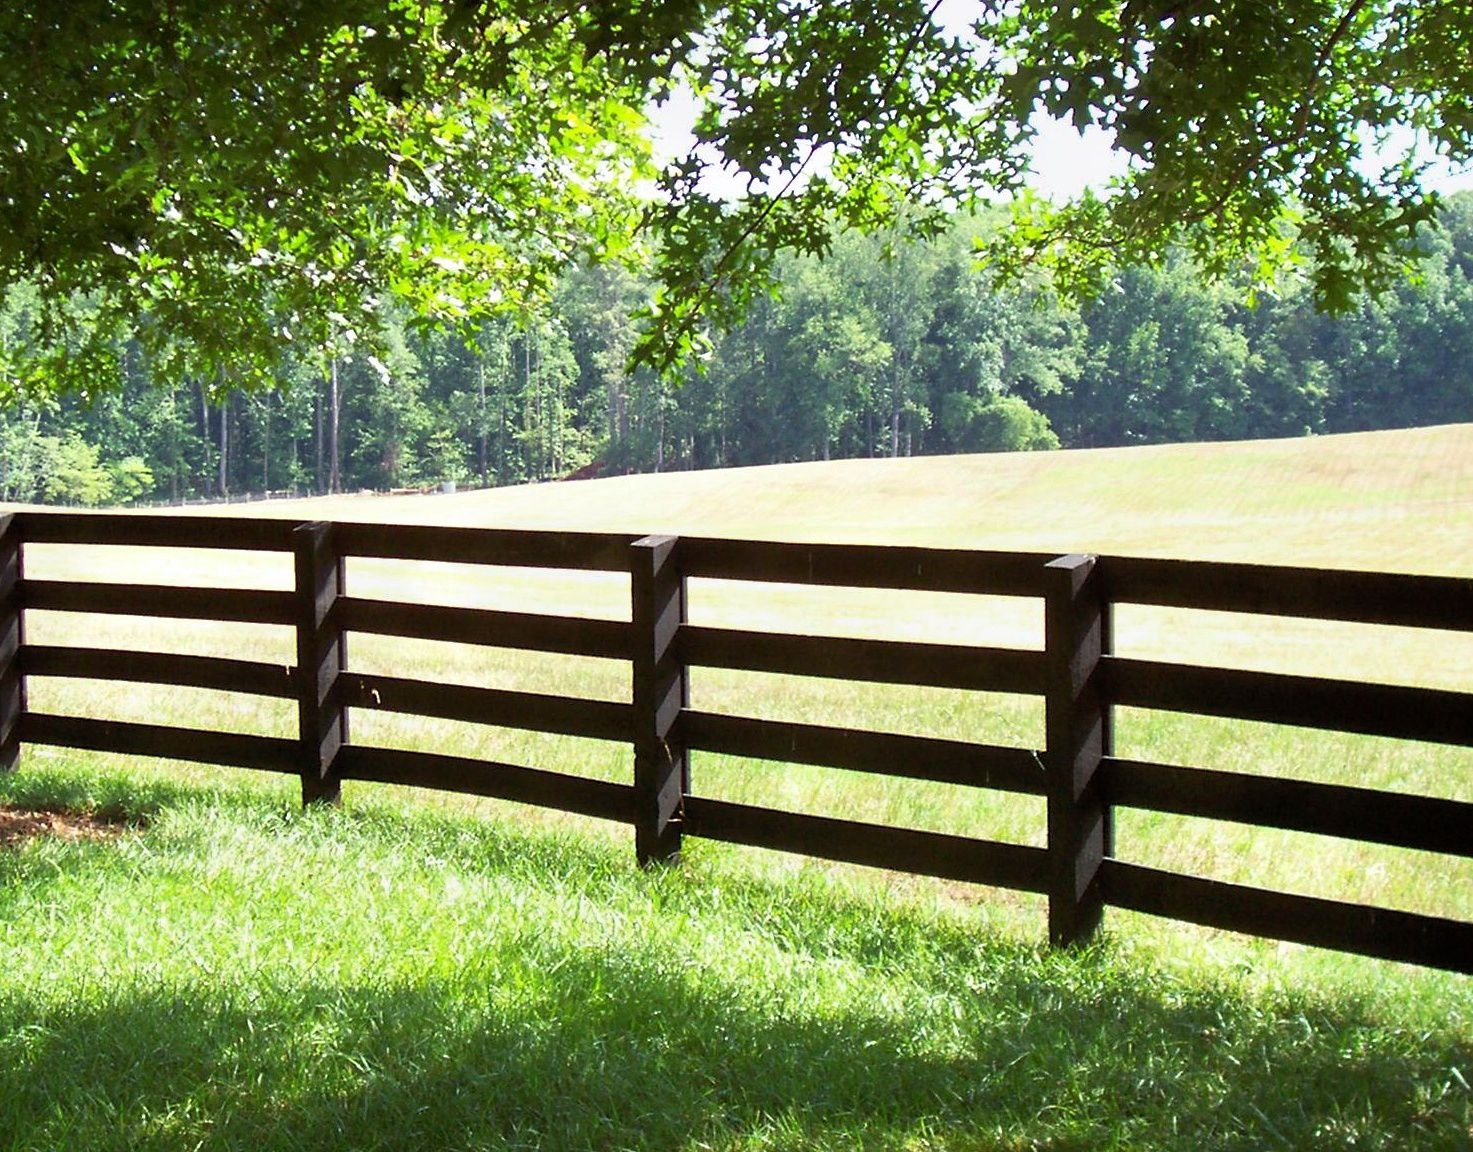 rail fence styles. Wood Farm Fence. Fence Styles - Yahoo! Search Results Rail E